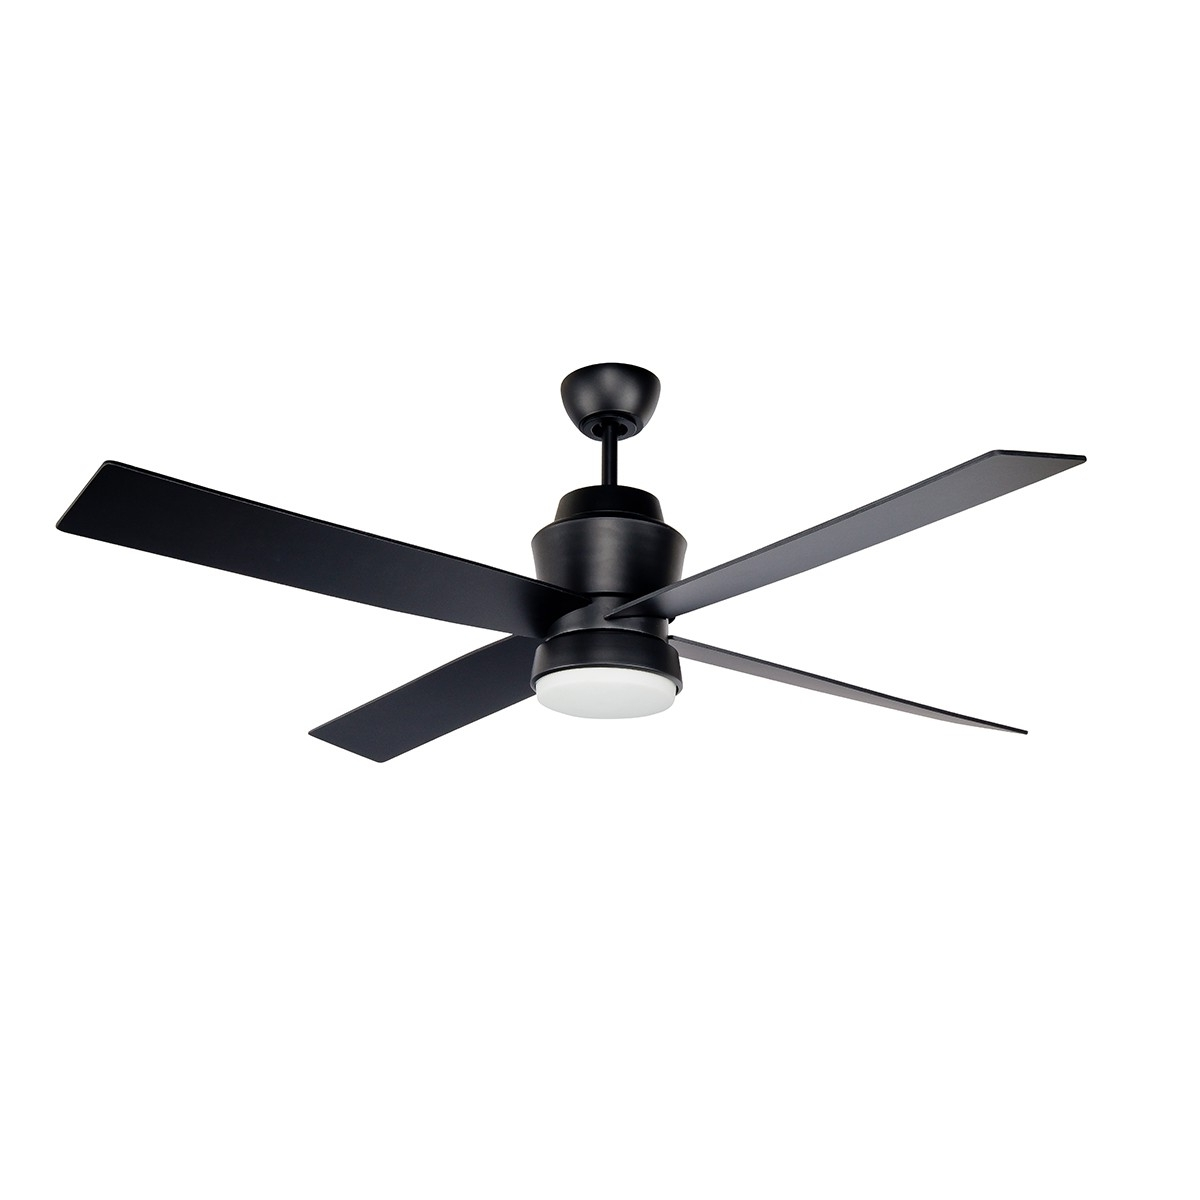 Most Popular Outdoor Ceiling Fans For Wet Areas With Regard To Prologue Outdoor Ceiling Fan :: Stori Modern (View 10 of 20)